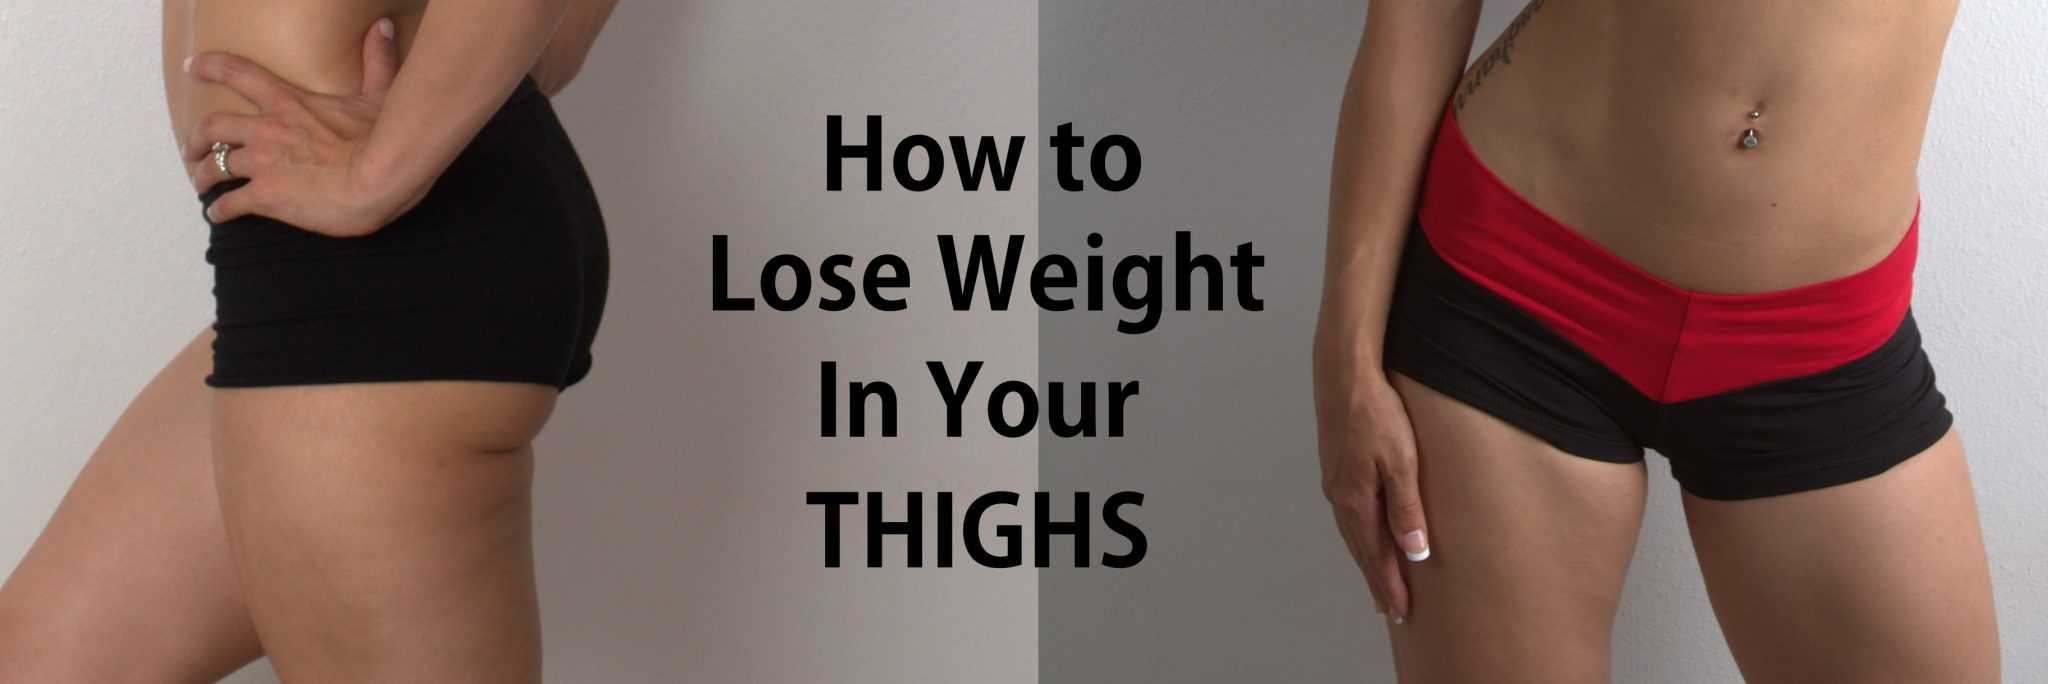 How to Lose Weight in Your Thighs - Diary of a Fit Mommy